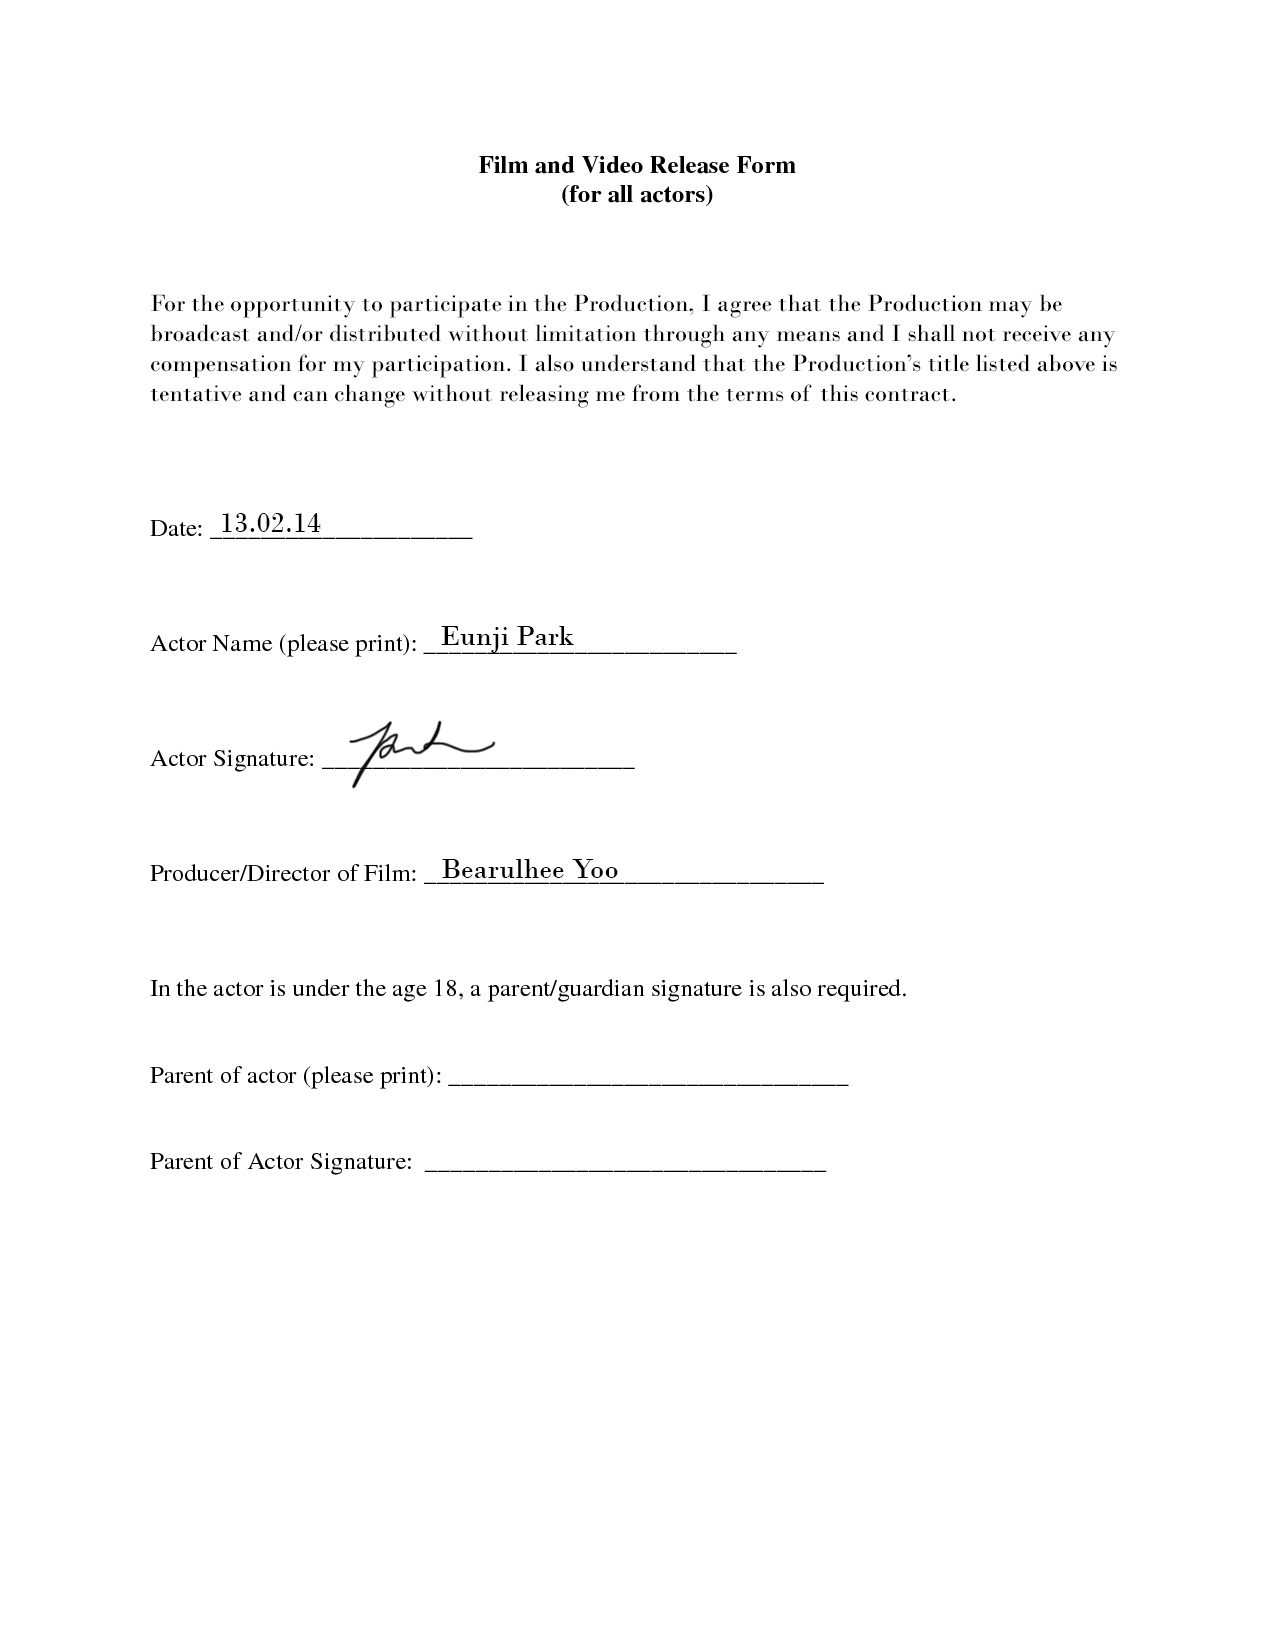 These Are Release Forms. Itu0027s Like A Permission Of Using Someoneu0027s Materials  Such As Music, Sound, Image, Photographs. You Have To Get Release Form When  You ...